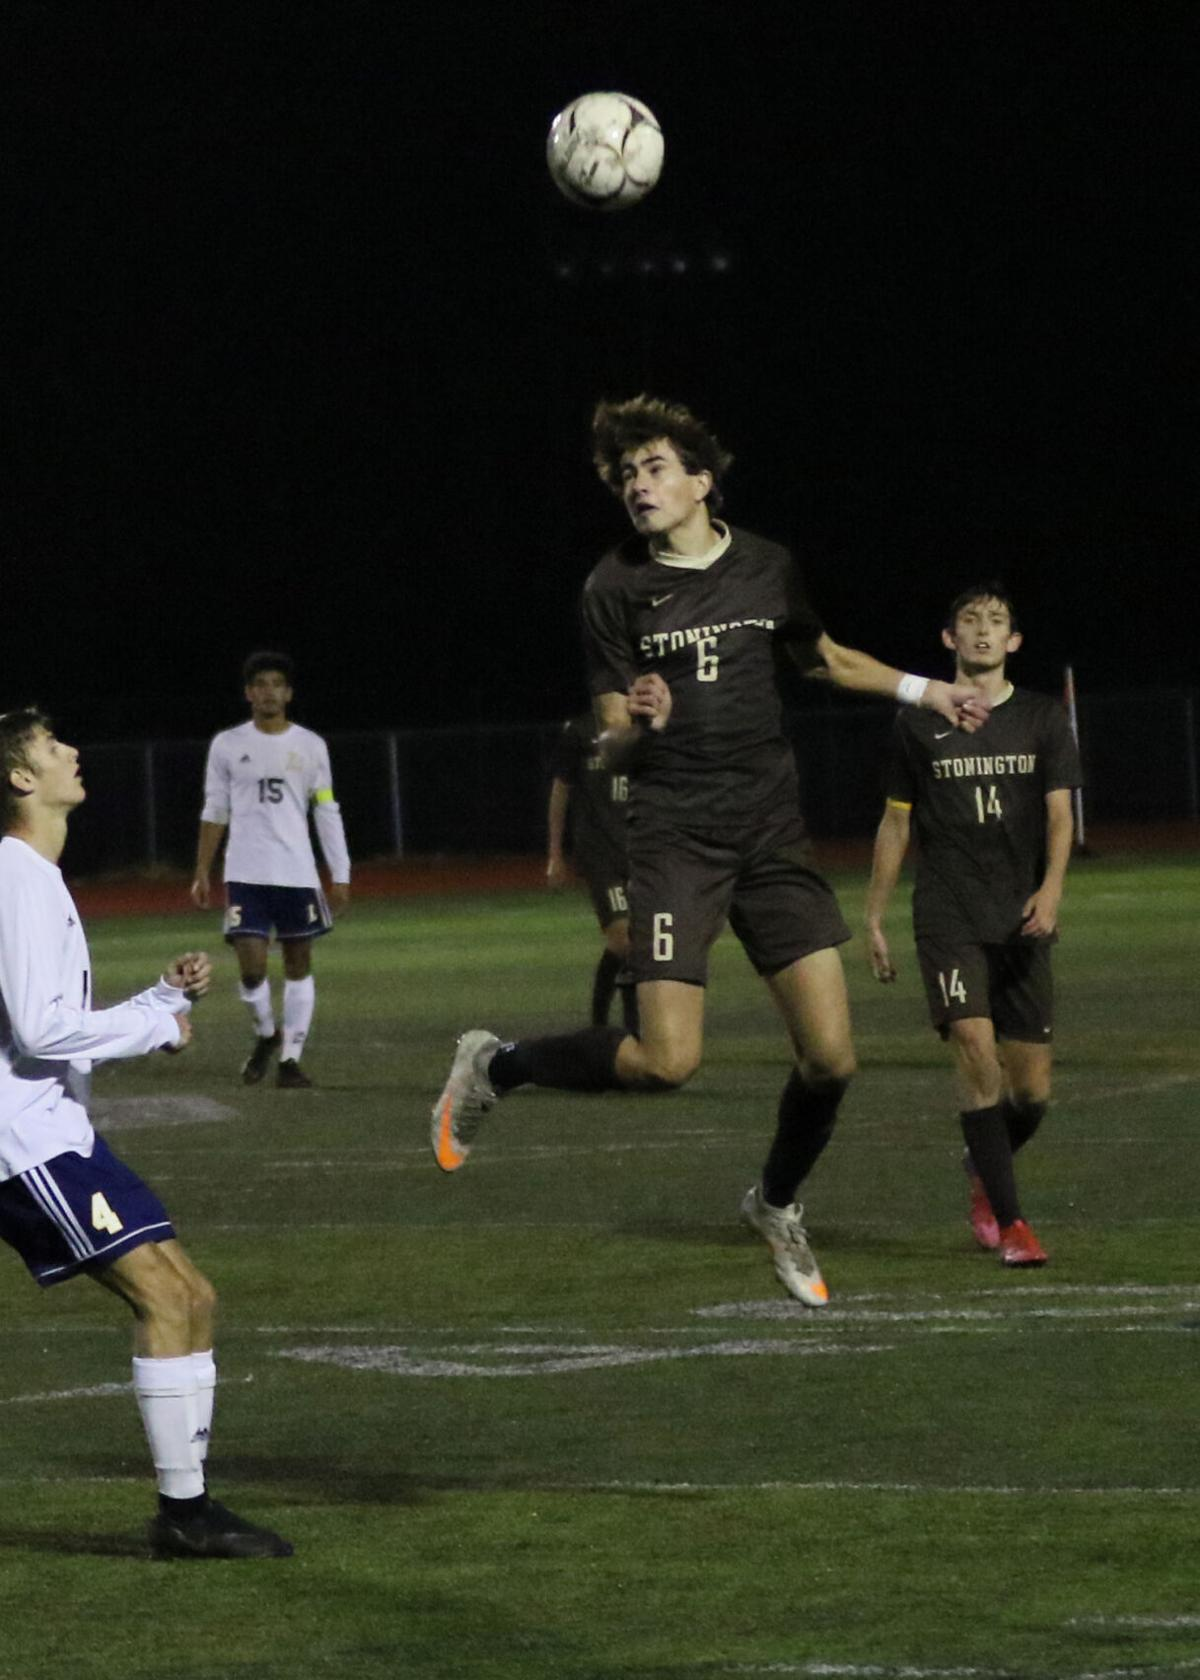 William Swain (6) deflects the ball for the Bears as teammate William deCastro (14) looks on. The Stonington Bears boys' varsity soccer team played the Ledyard Colonels Friday evening, November 6, 2020, at Stonington High School's Palmer Field. | Jackie L. Turner, Special to The Sun.